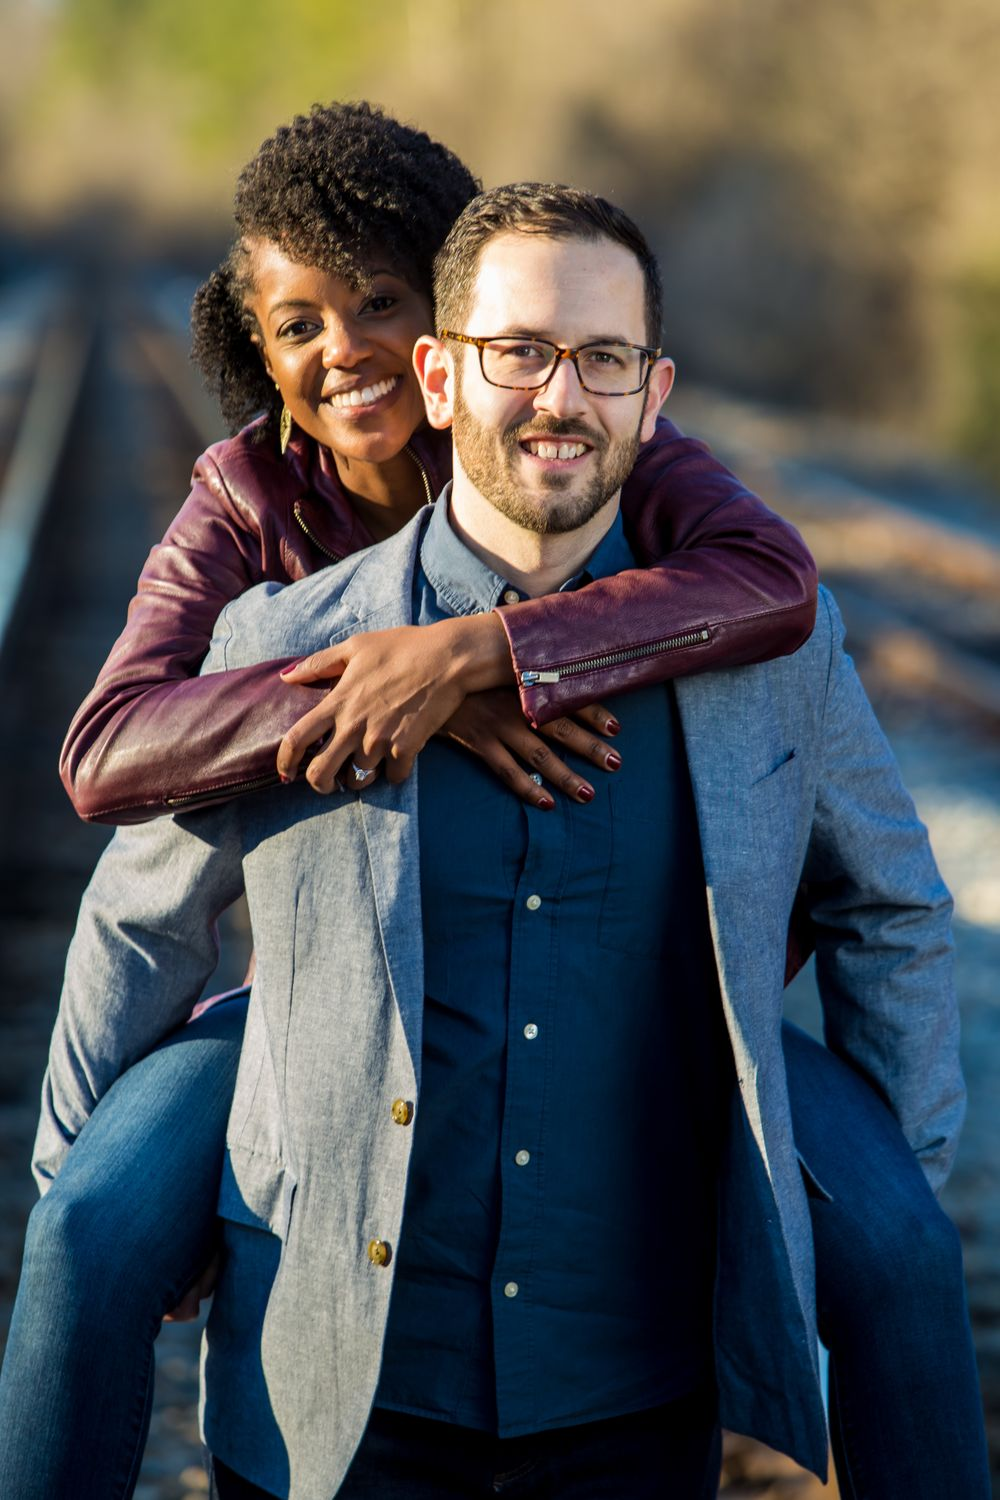 Engagement portrait at the railroad trestle at the Palmetto Trail near Peak, SC